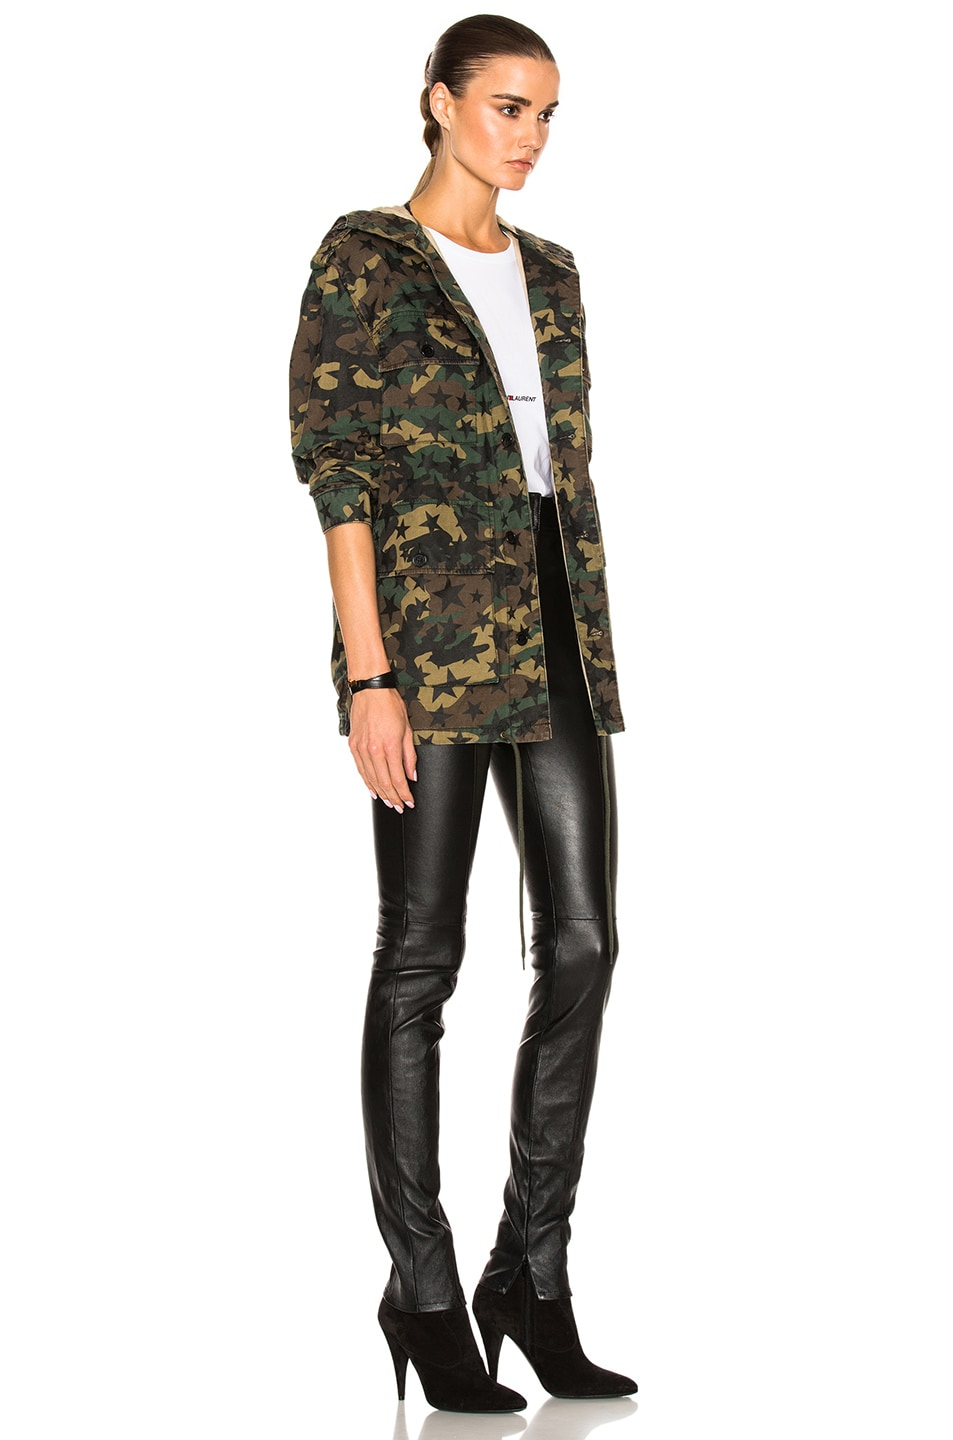 Image 4 of Saint Laurent Army Camouflage Jacket with Stars in Army Camouflage